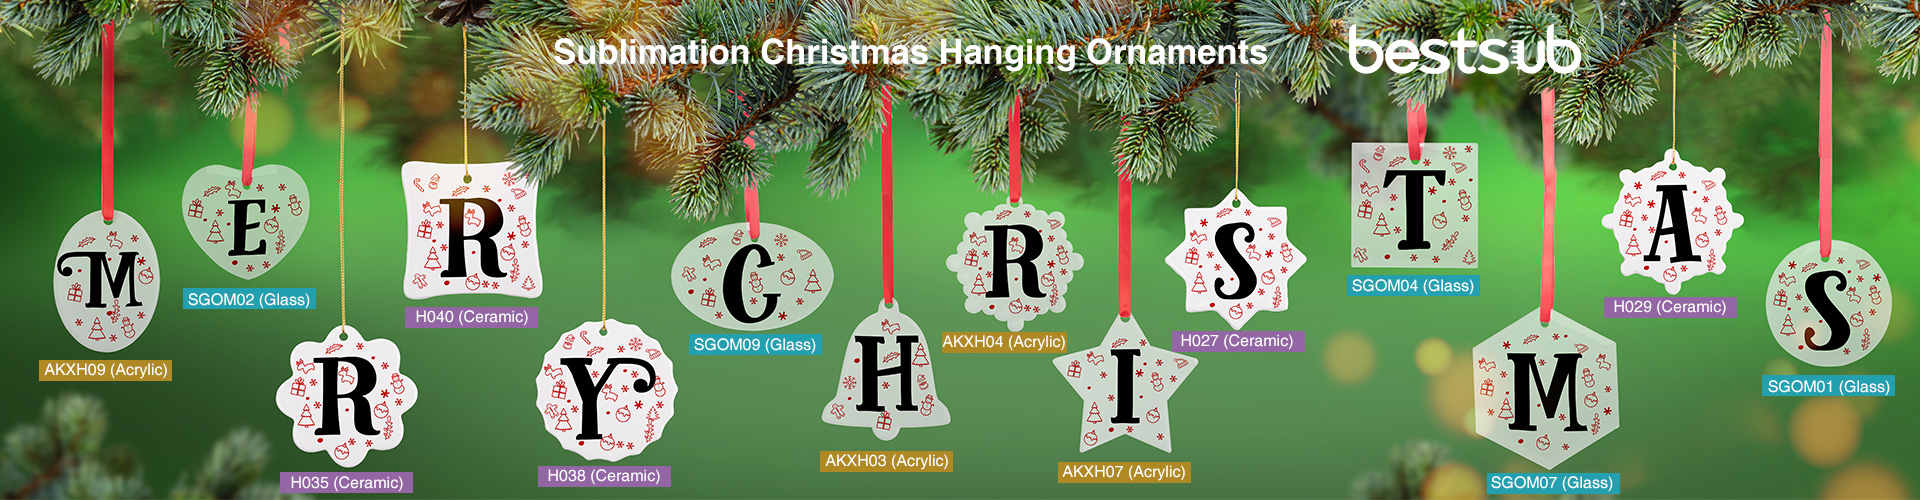 2020-9-14_Sublimation_Christmas_Hanging_Ornaments_email